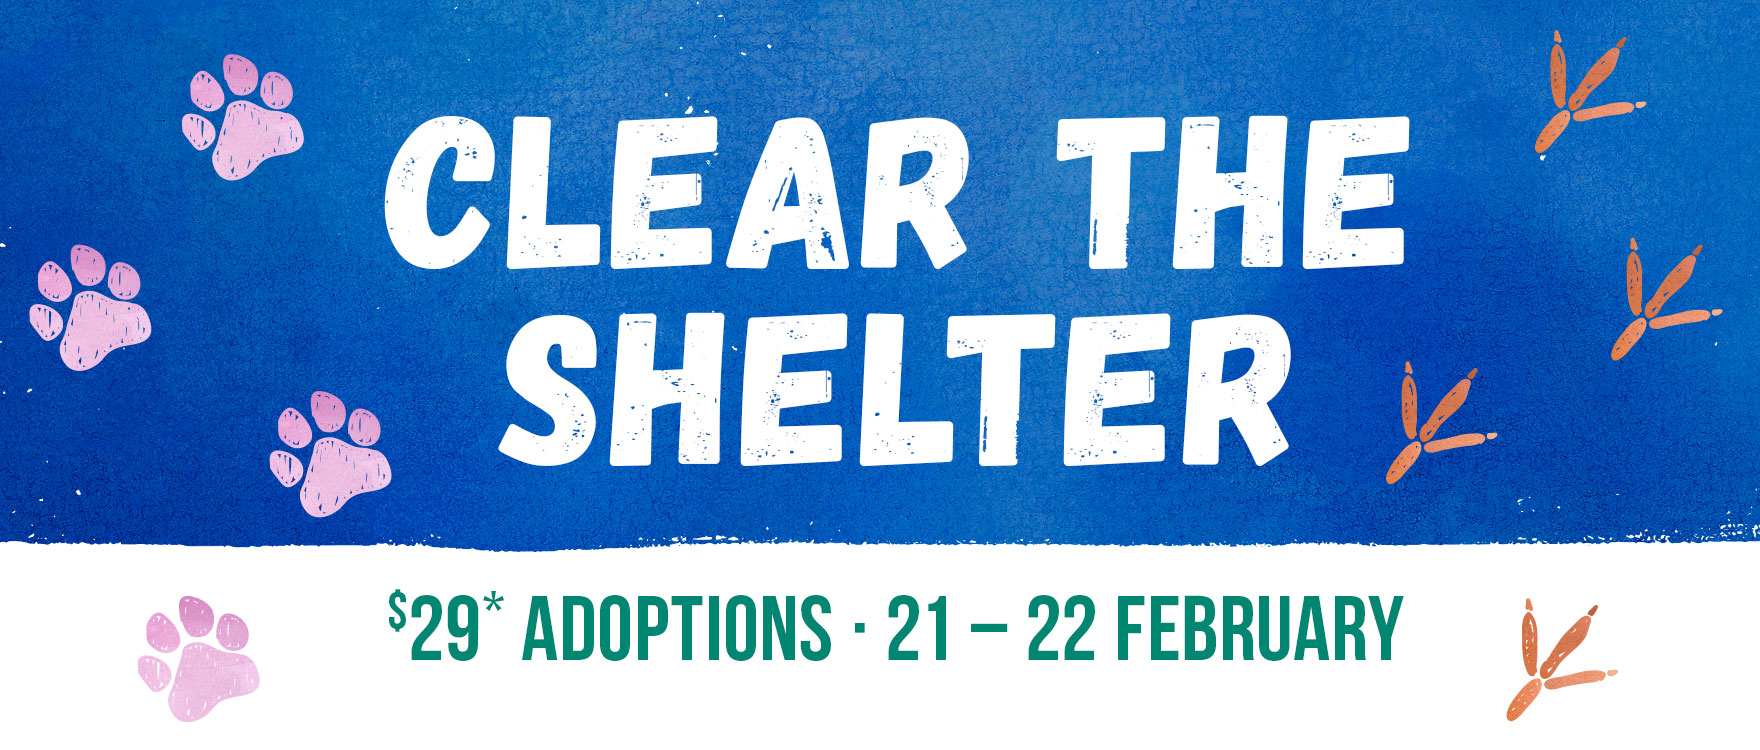 Clear The Shelter - $29 Adoptions